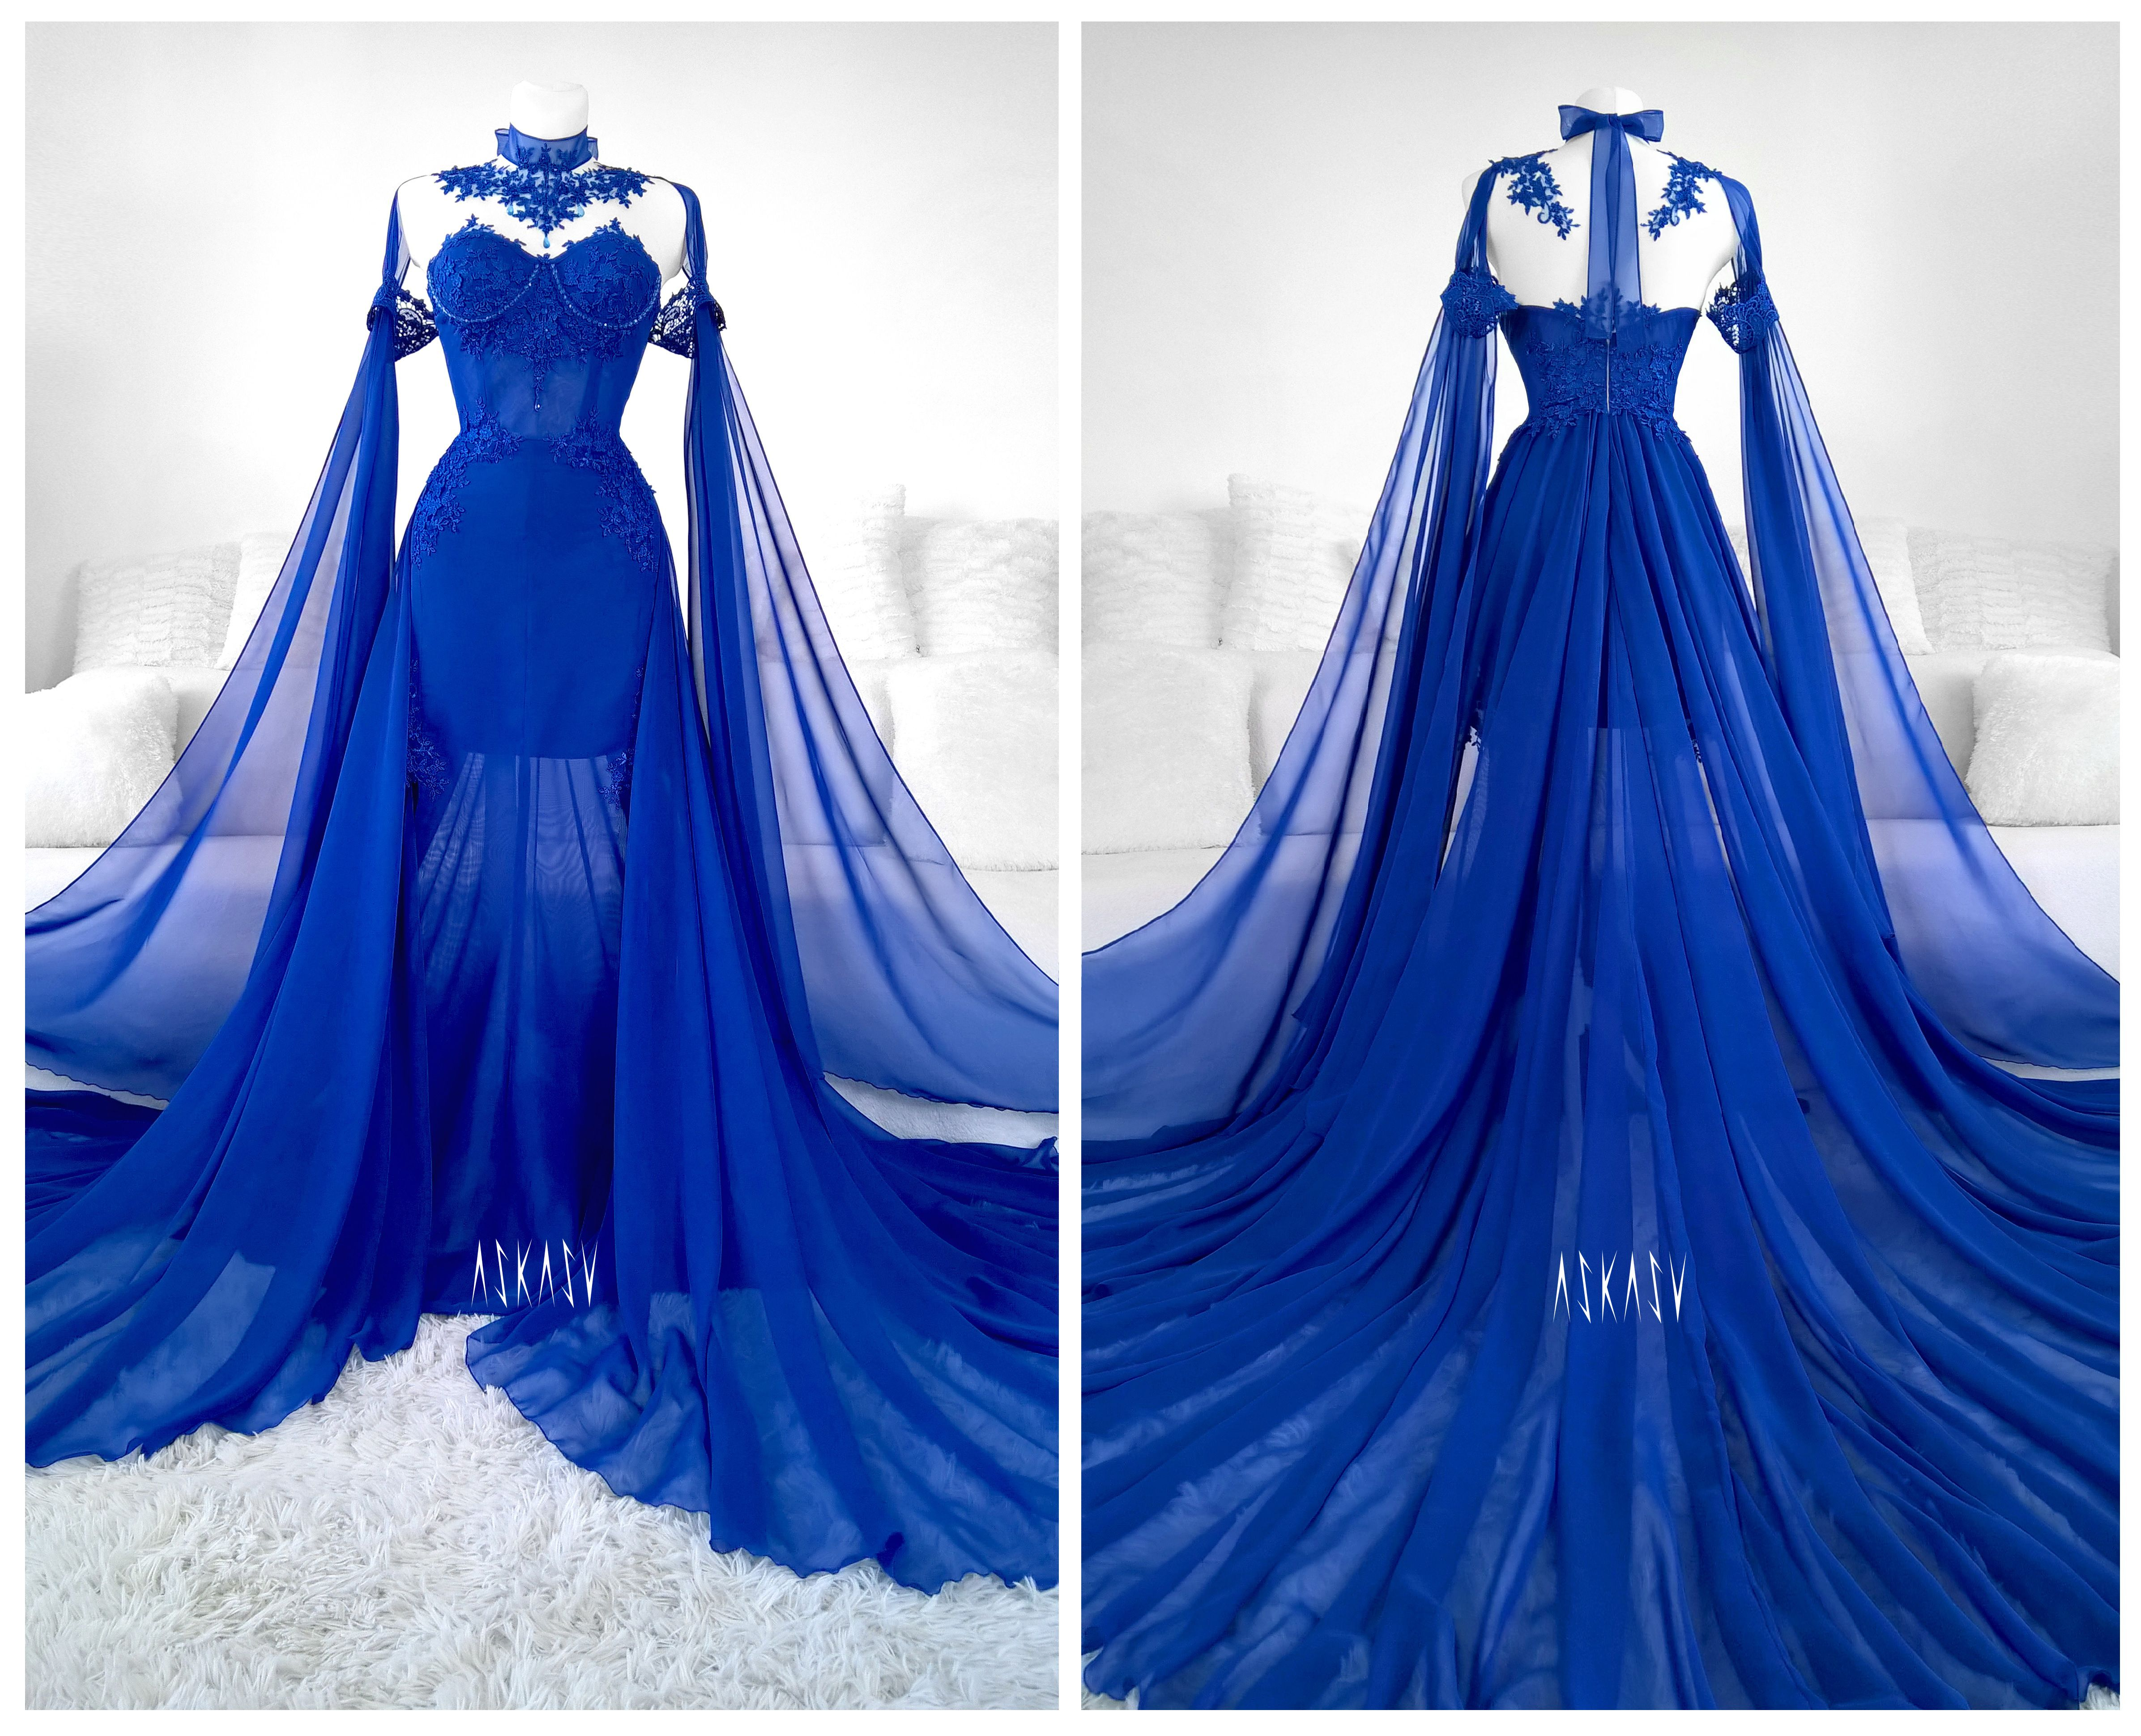 65145cea85ec1b The most beautiful dress ever. #sapphire #blue #cobalt #gown #goth #lace  #mesh #train #fashion #alternative #askasu #bluedress #fairy #faerie #elf